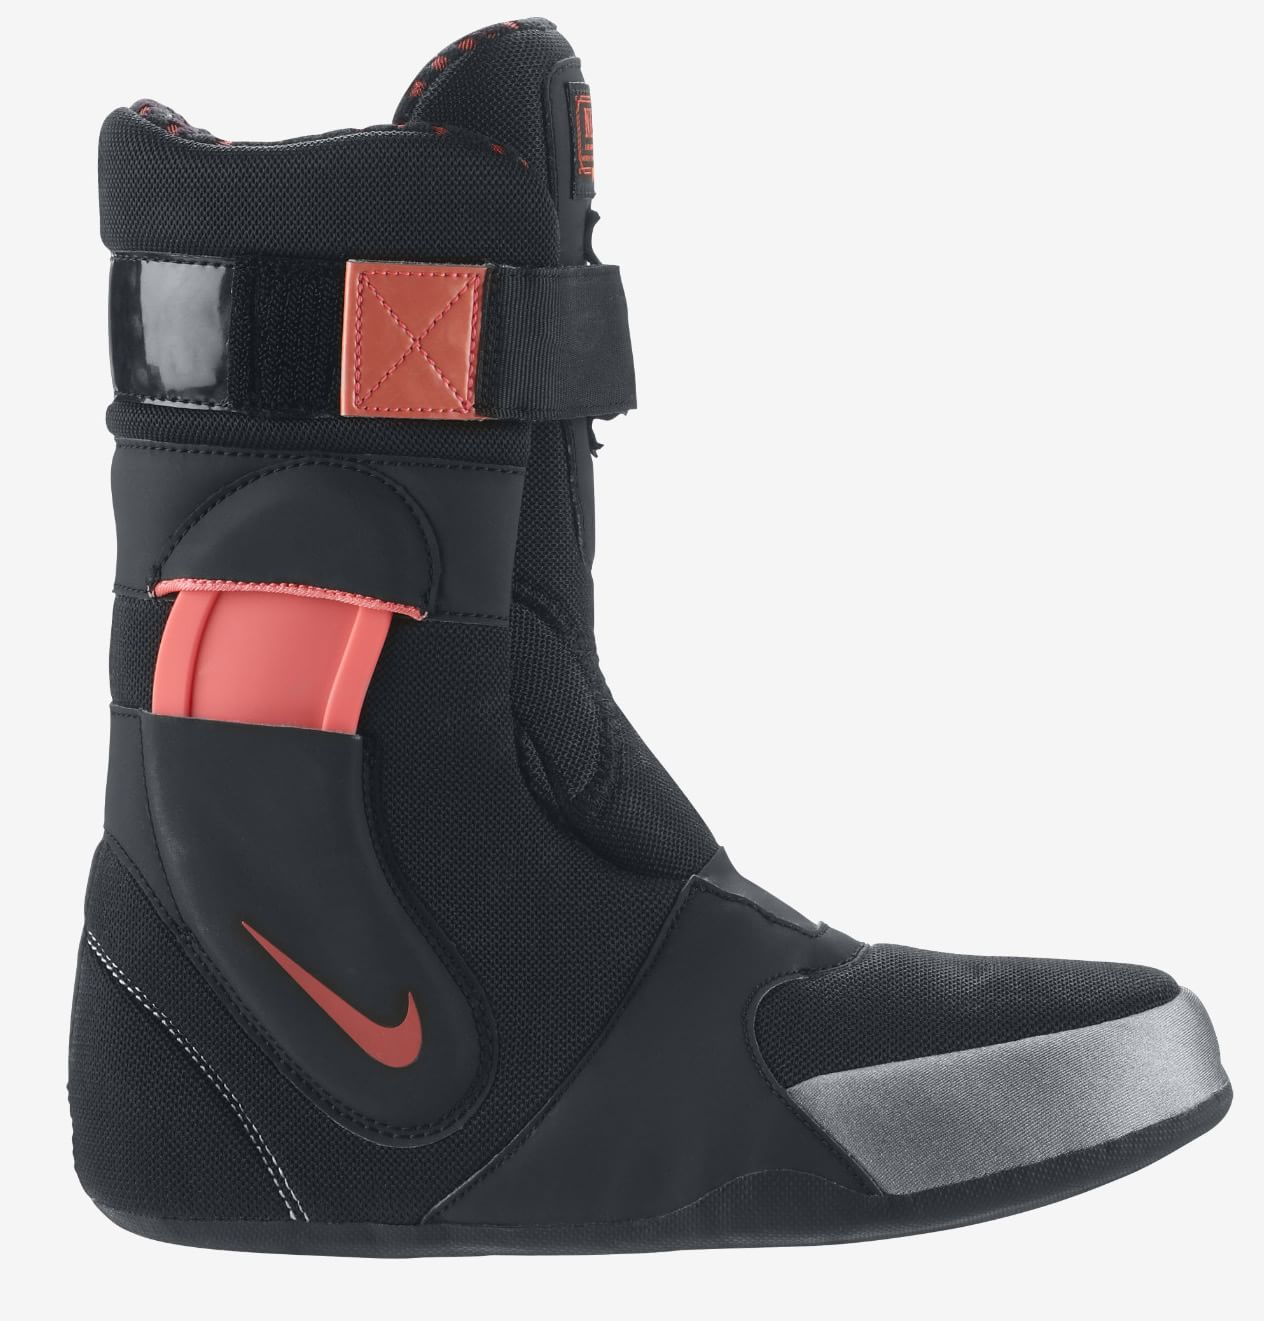 Unique Nike Womens Snowboard Boots Nike Snowbord  Bing Images